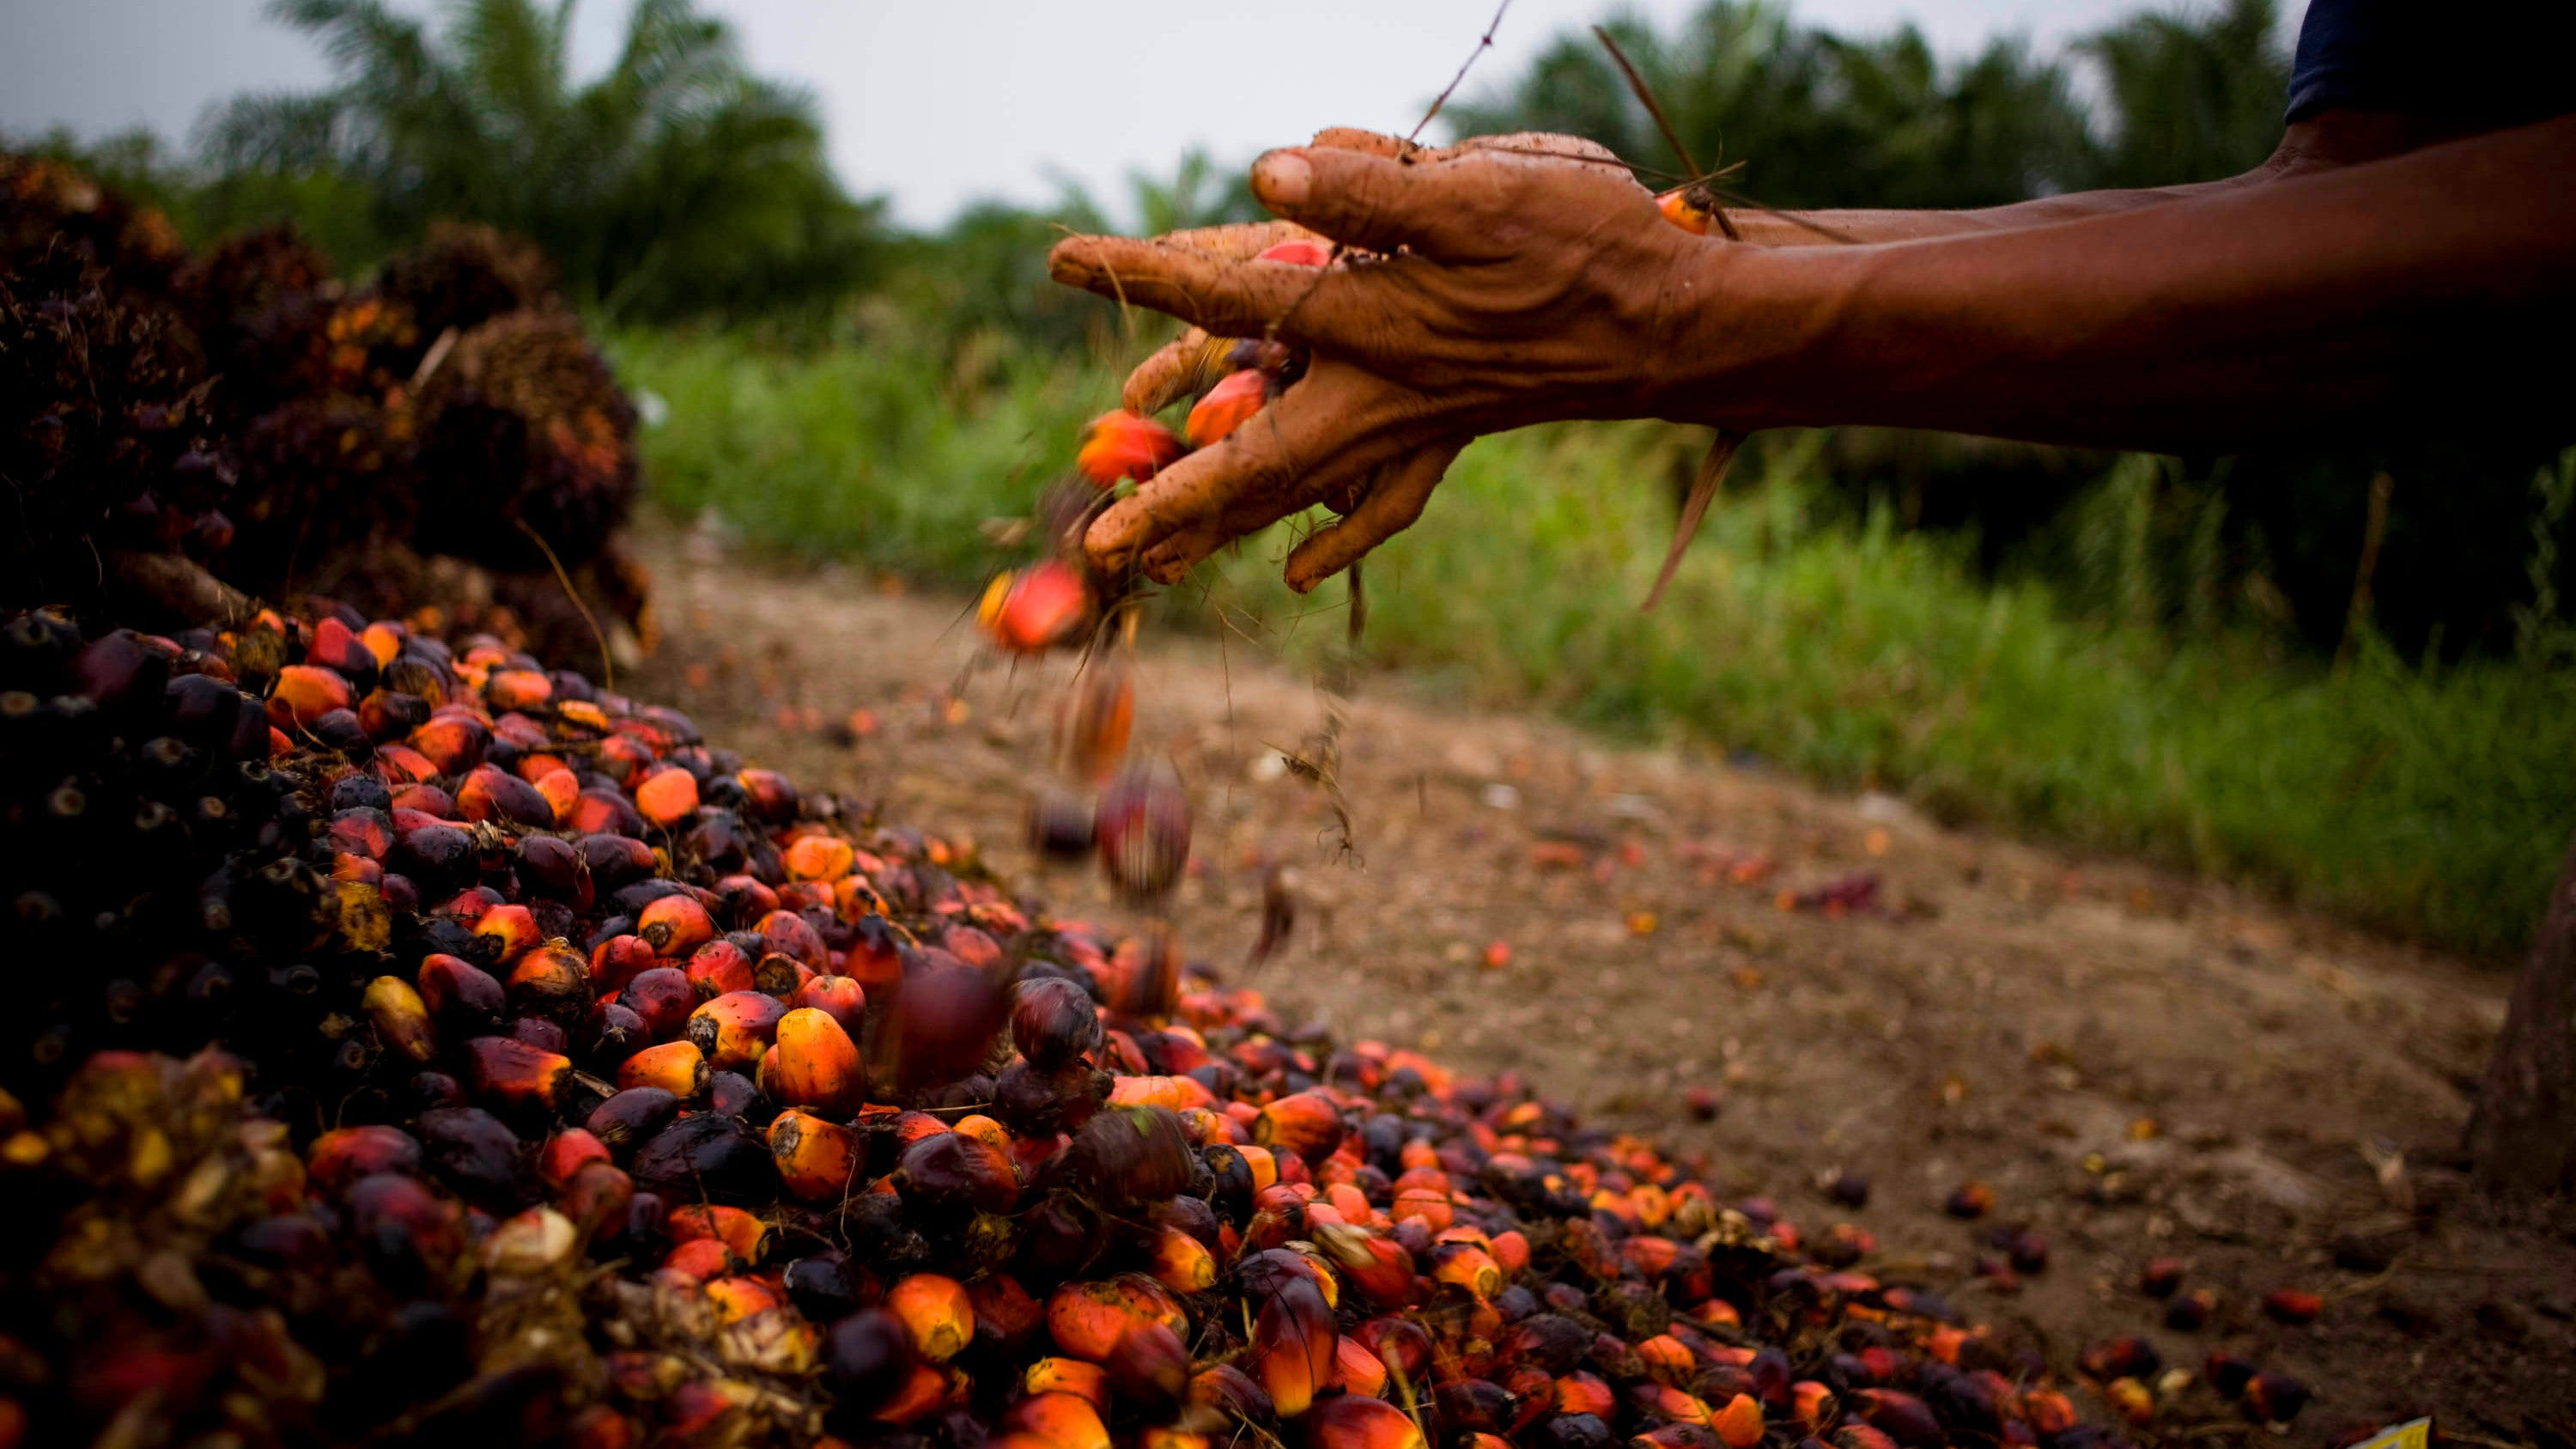 animals ask-lh ask-lifehacker buying conservation palm-oil the-environment